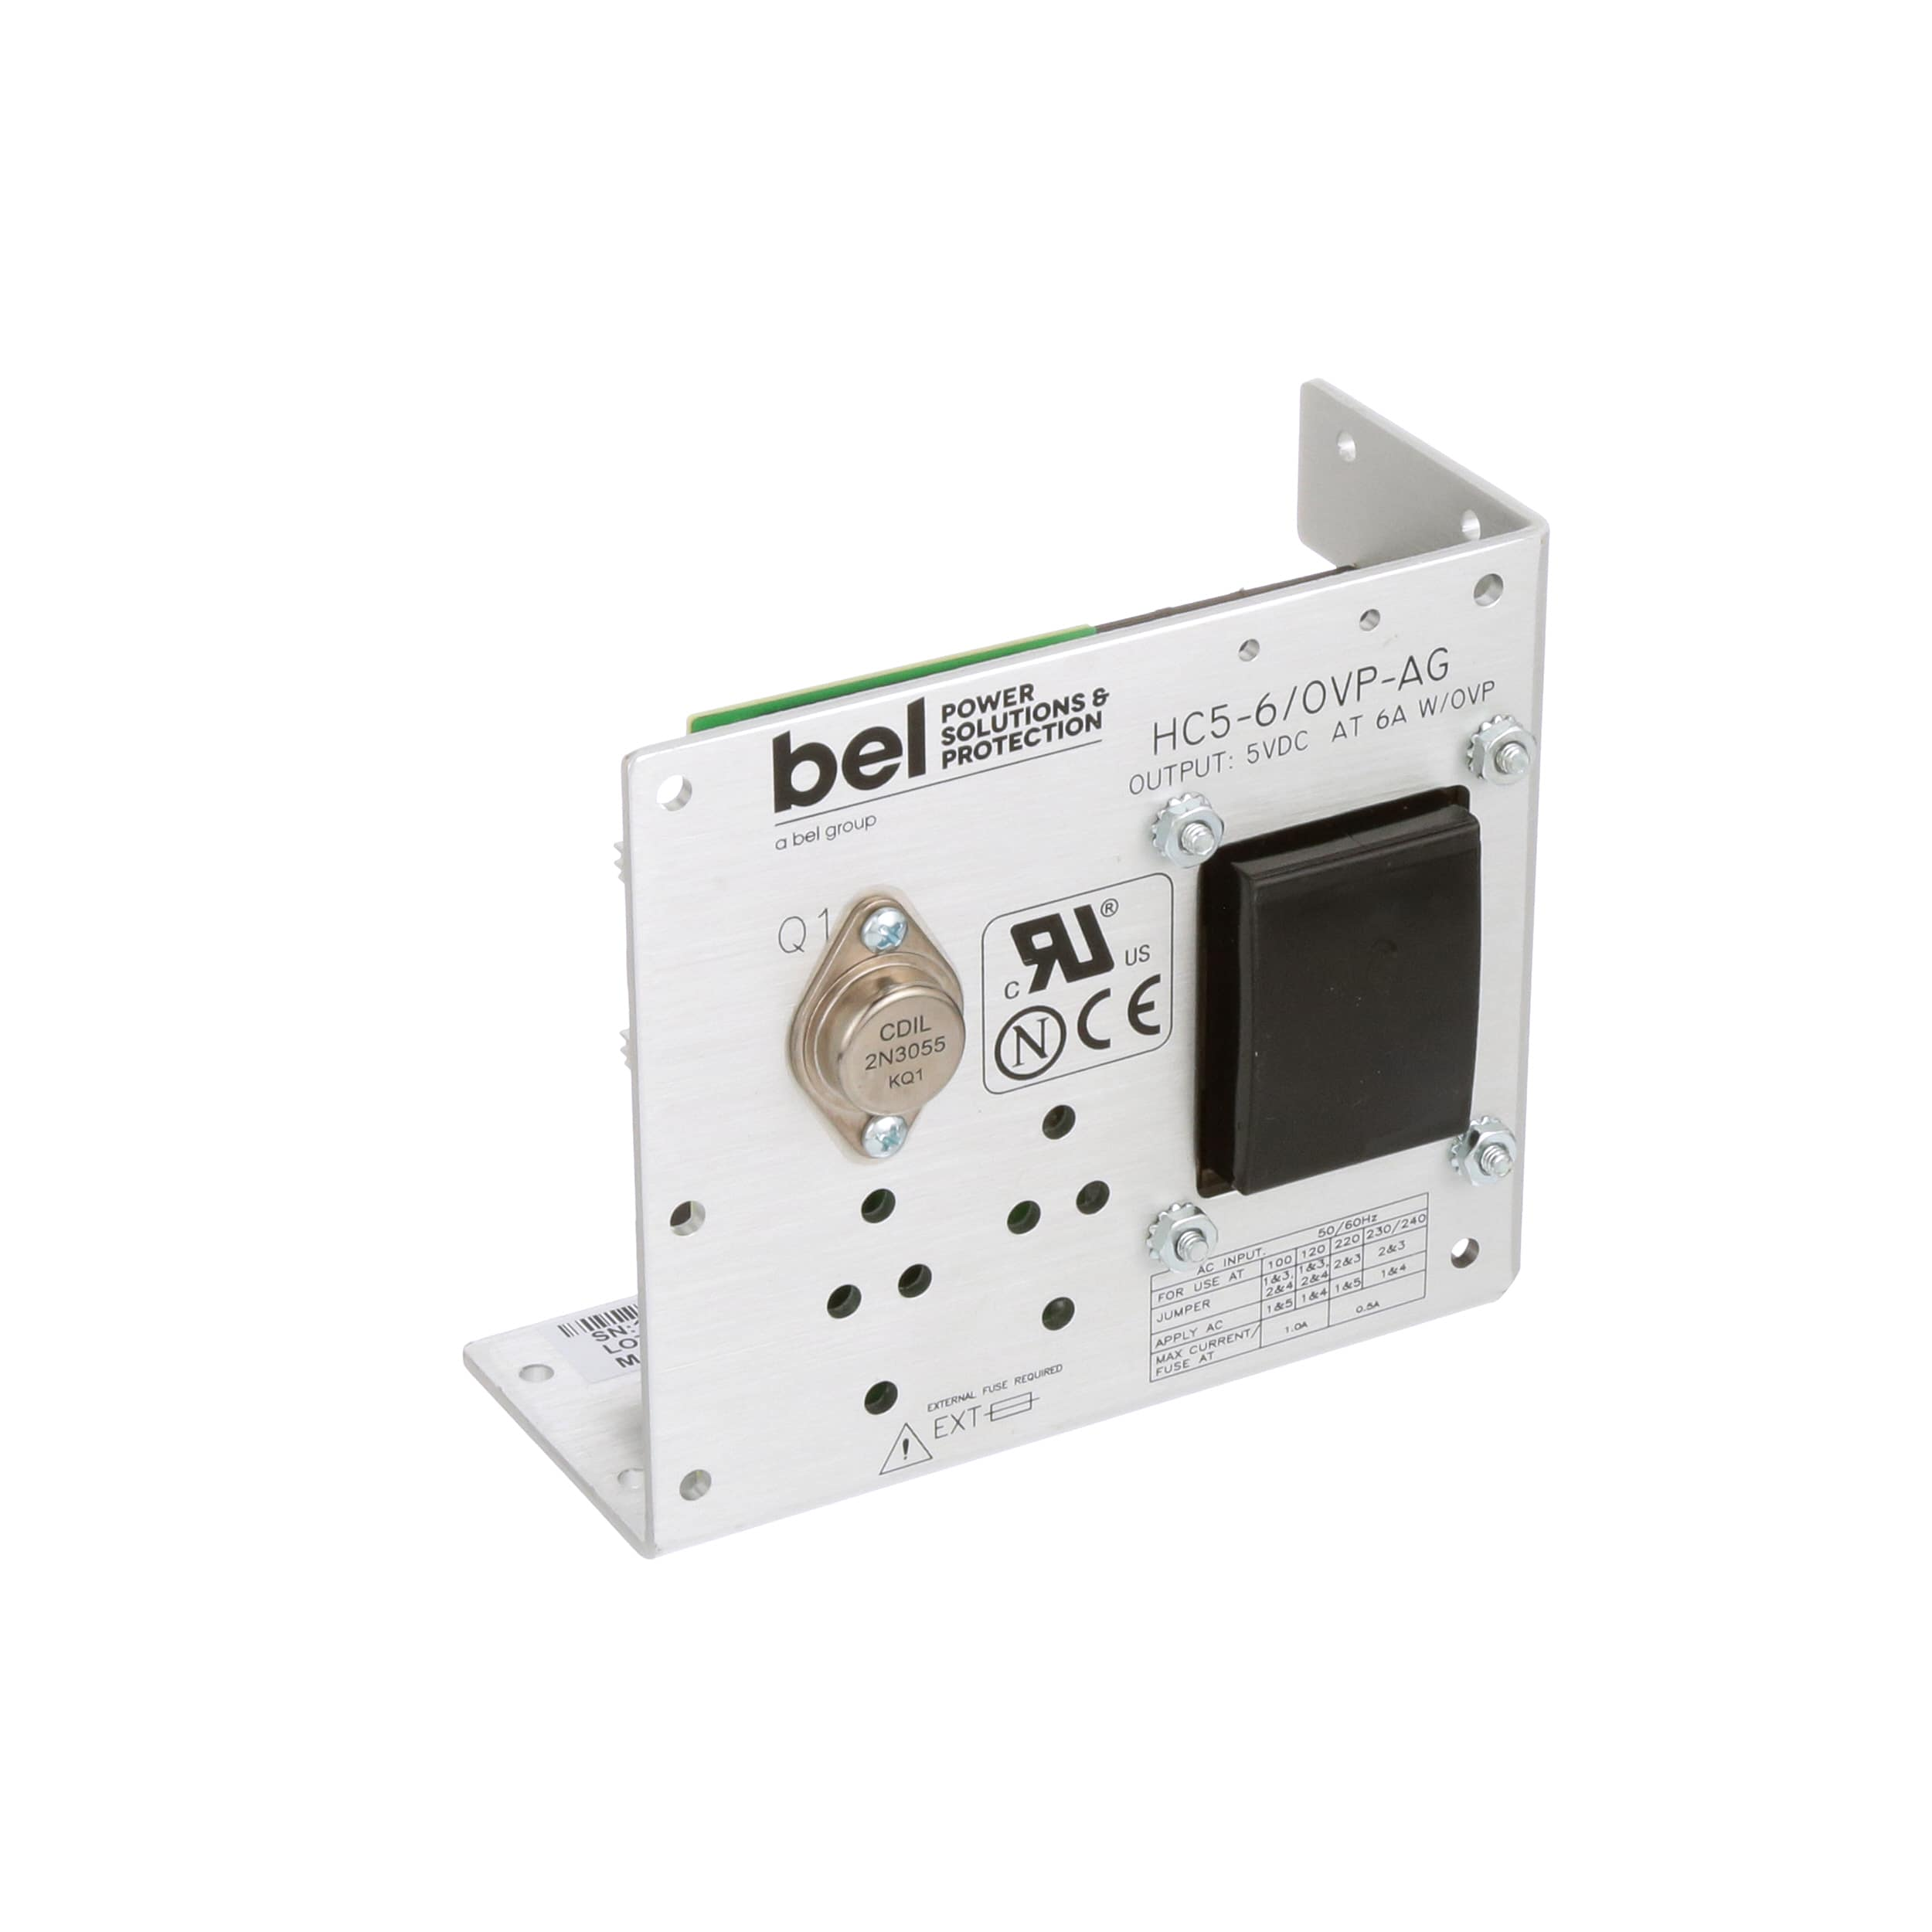 Bel Power Solutions Hc5 6 Ovp Ag Supply Ac Dc 5v 6a And 12v Using 2n3055 Lm309 100 264v In Open Frame Panel Mount Linear Series Allied Electronics